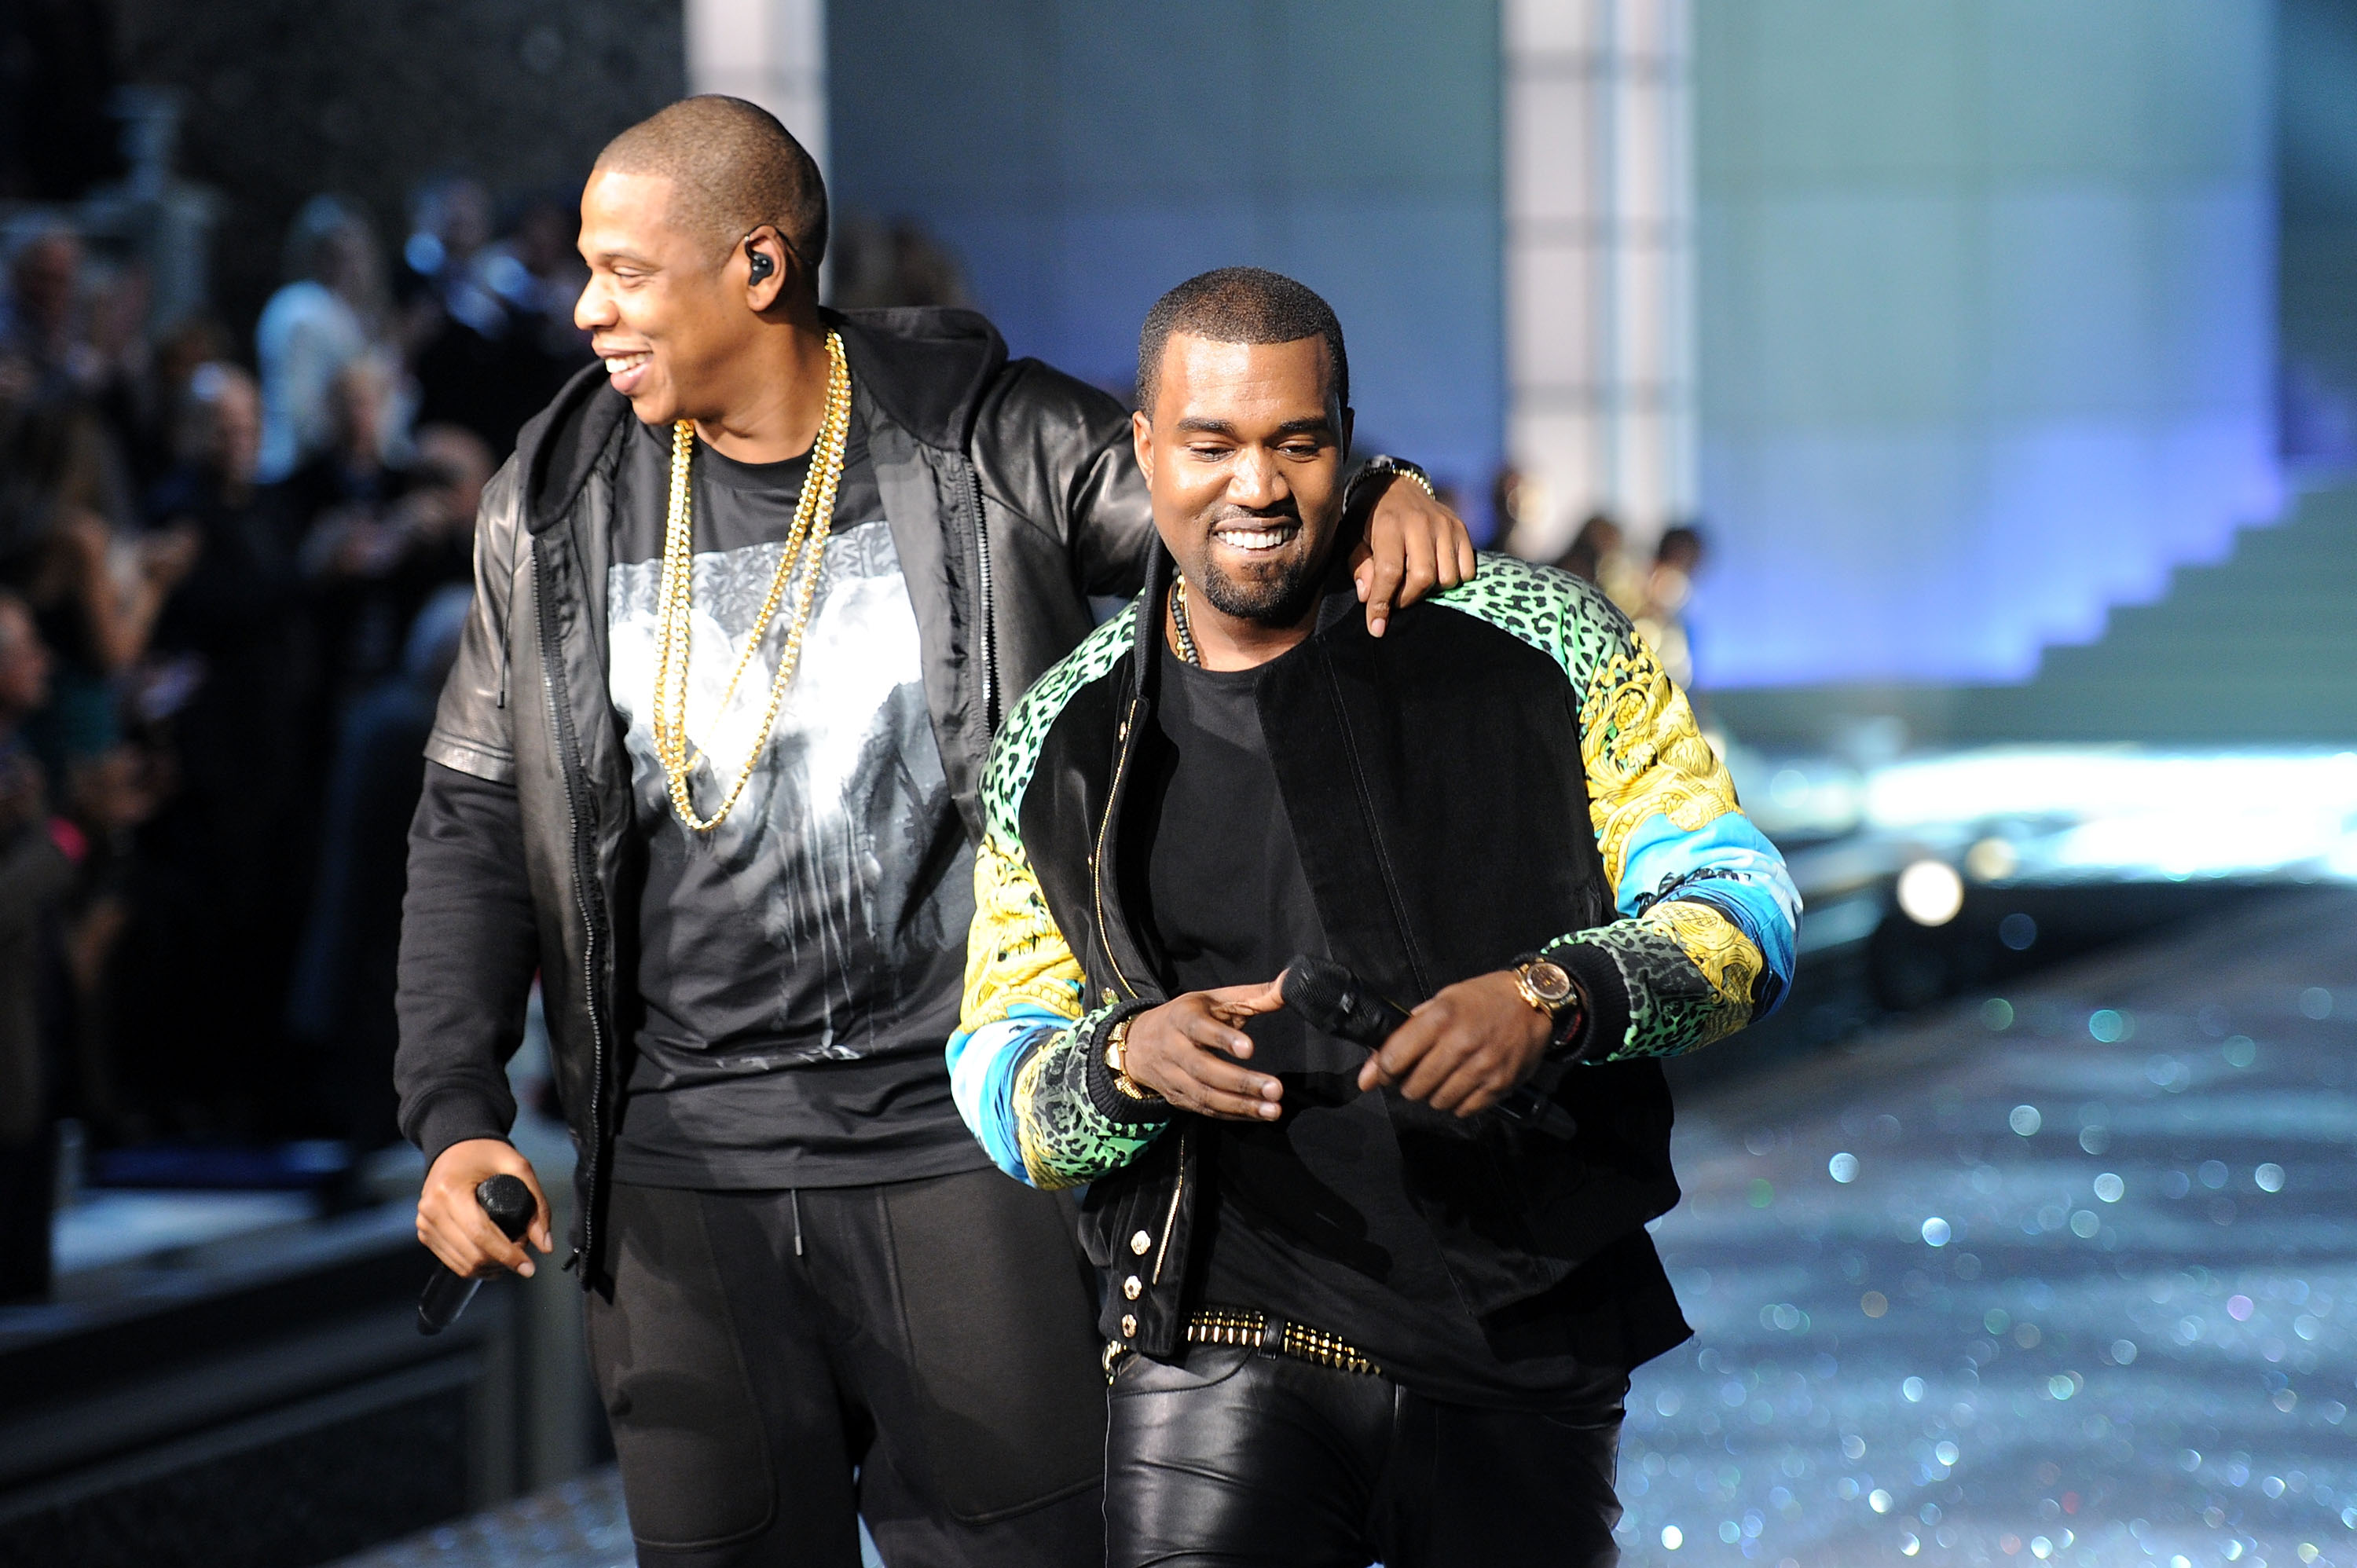 Kanye West & Jay Z Have Planned On Meeting Face-To-Face kanye west jay z 1477059685